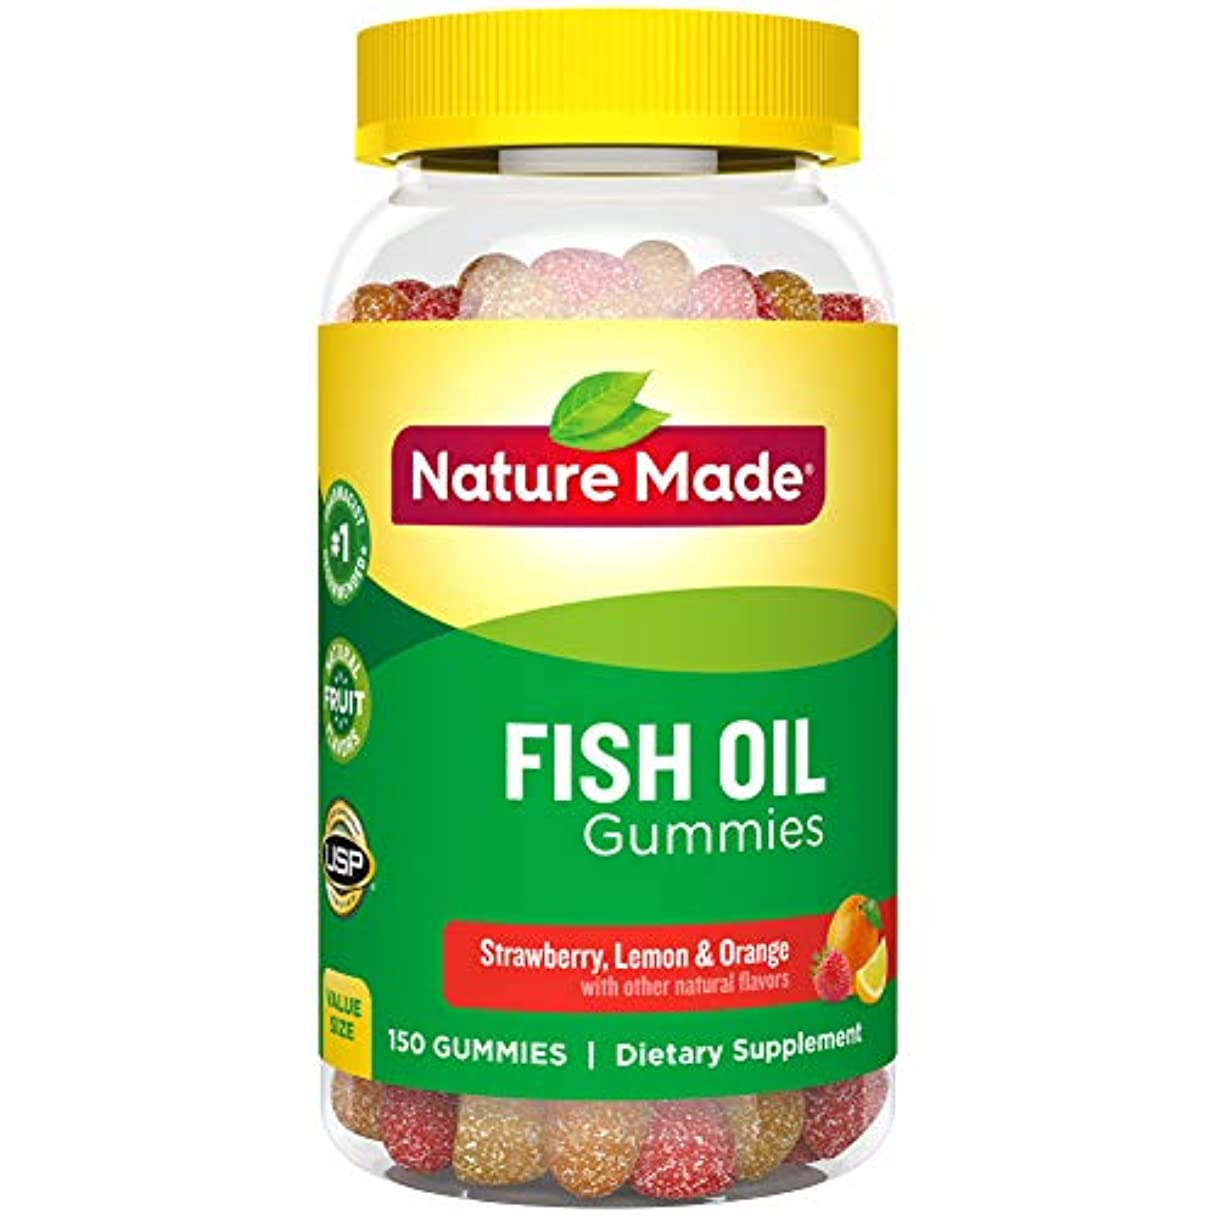 破壊的な時間とともに賭けNature Made Fish Oil Adult Gummies Nutritional Supplements, Value Size, 150 Count 海外直送品